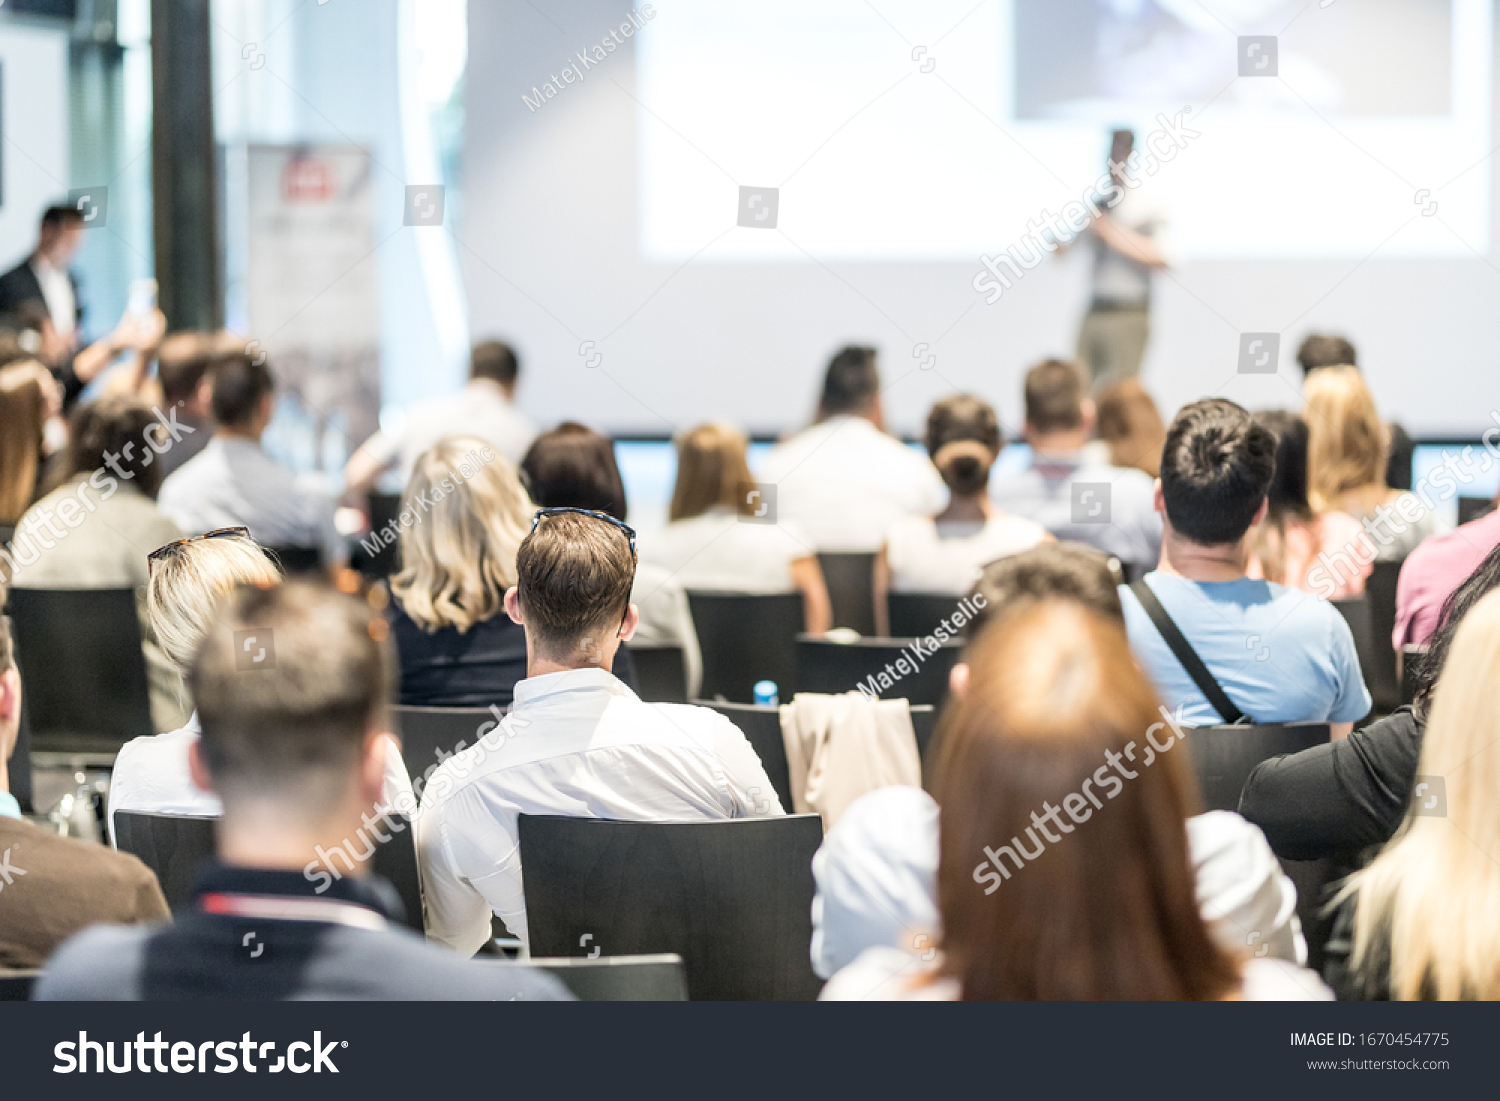 Business and entrepreneurship symposium. Speaker giving a talk at business meeting. Audience in conference hall. Rear view of unrecognized participant in audience. #1670454775